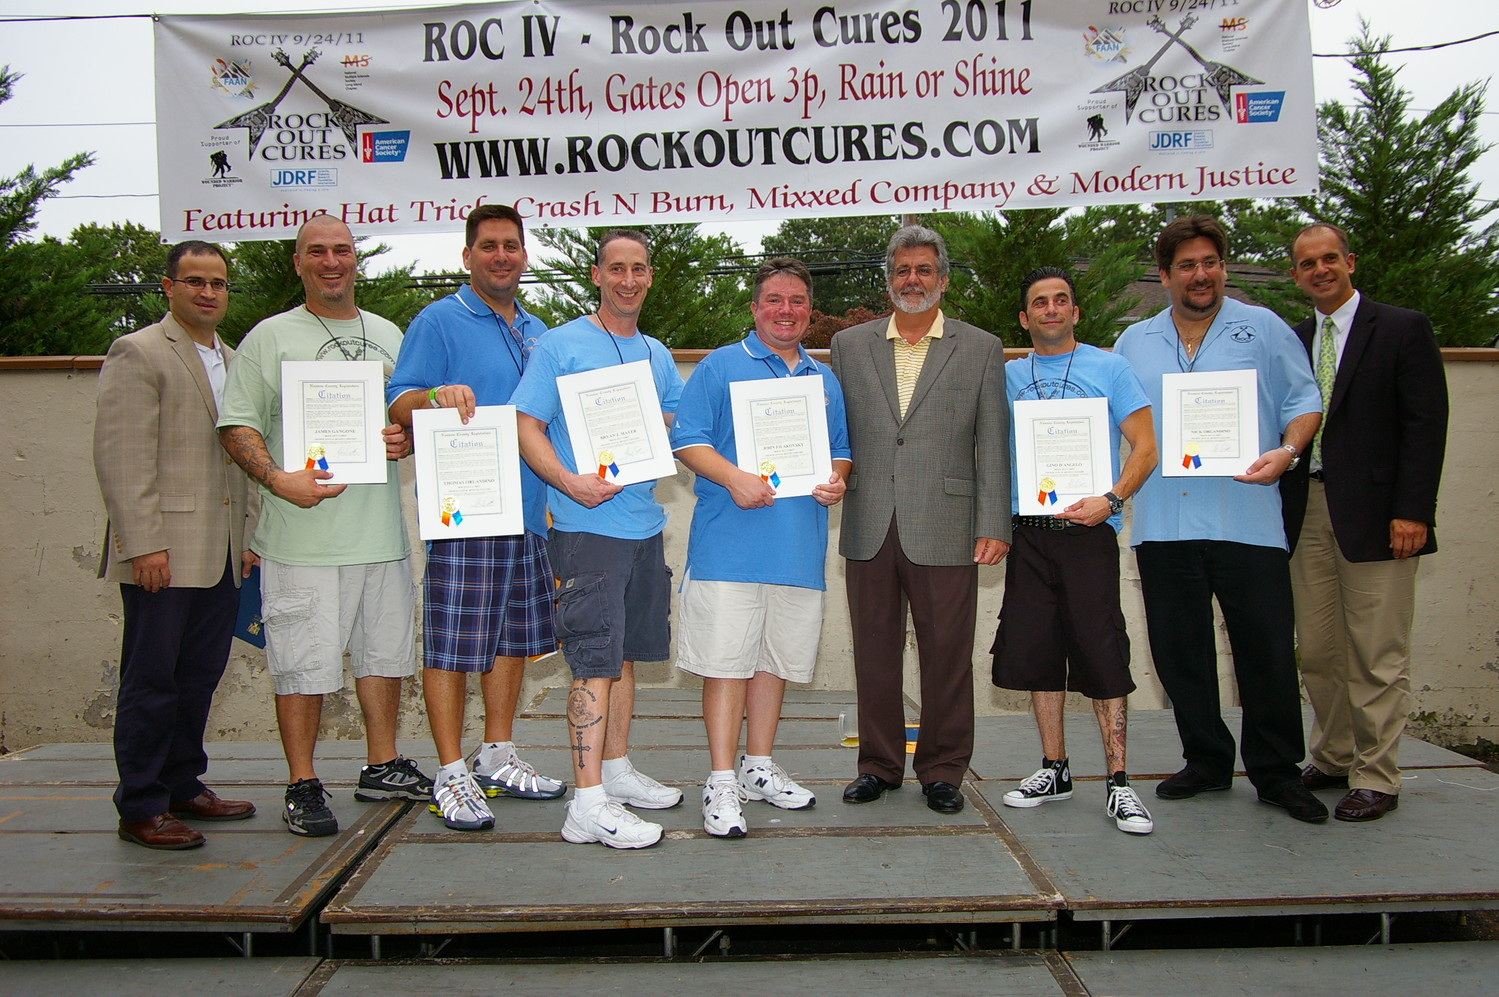 During the fourth concert, local officials, including former Nassau County Legislator John Ciotti, third from right, above, recognized ROC board members for their charity work, including, from left, James Gangone, Thomas Orlandino, Bryan Mayer, John Filakovsky, John Ciotti, Gino D'Angelo and Nick Orlandino.